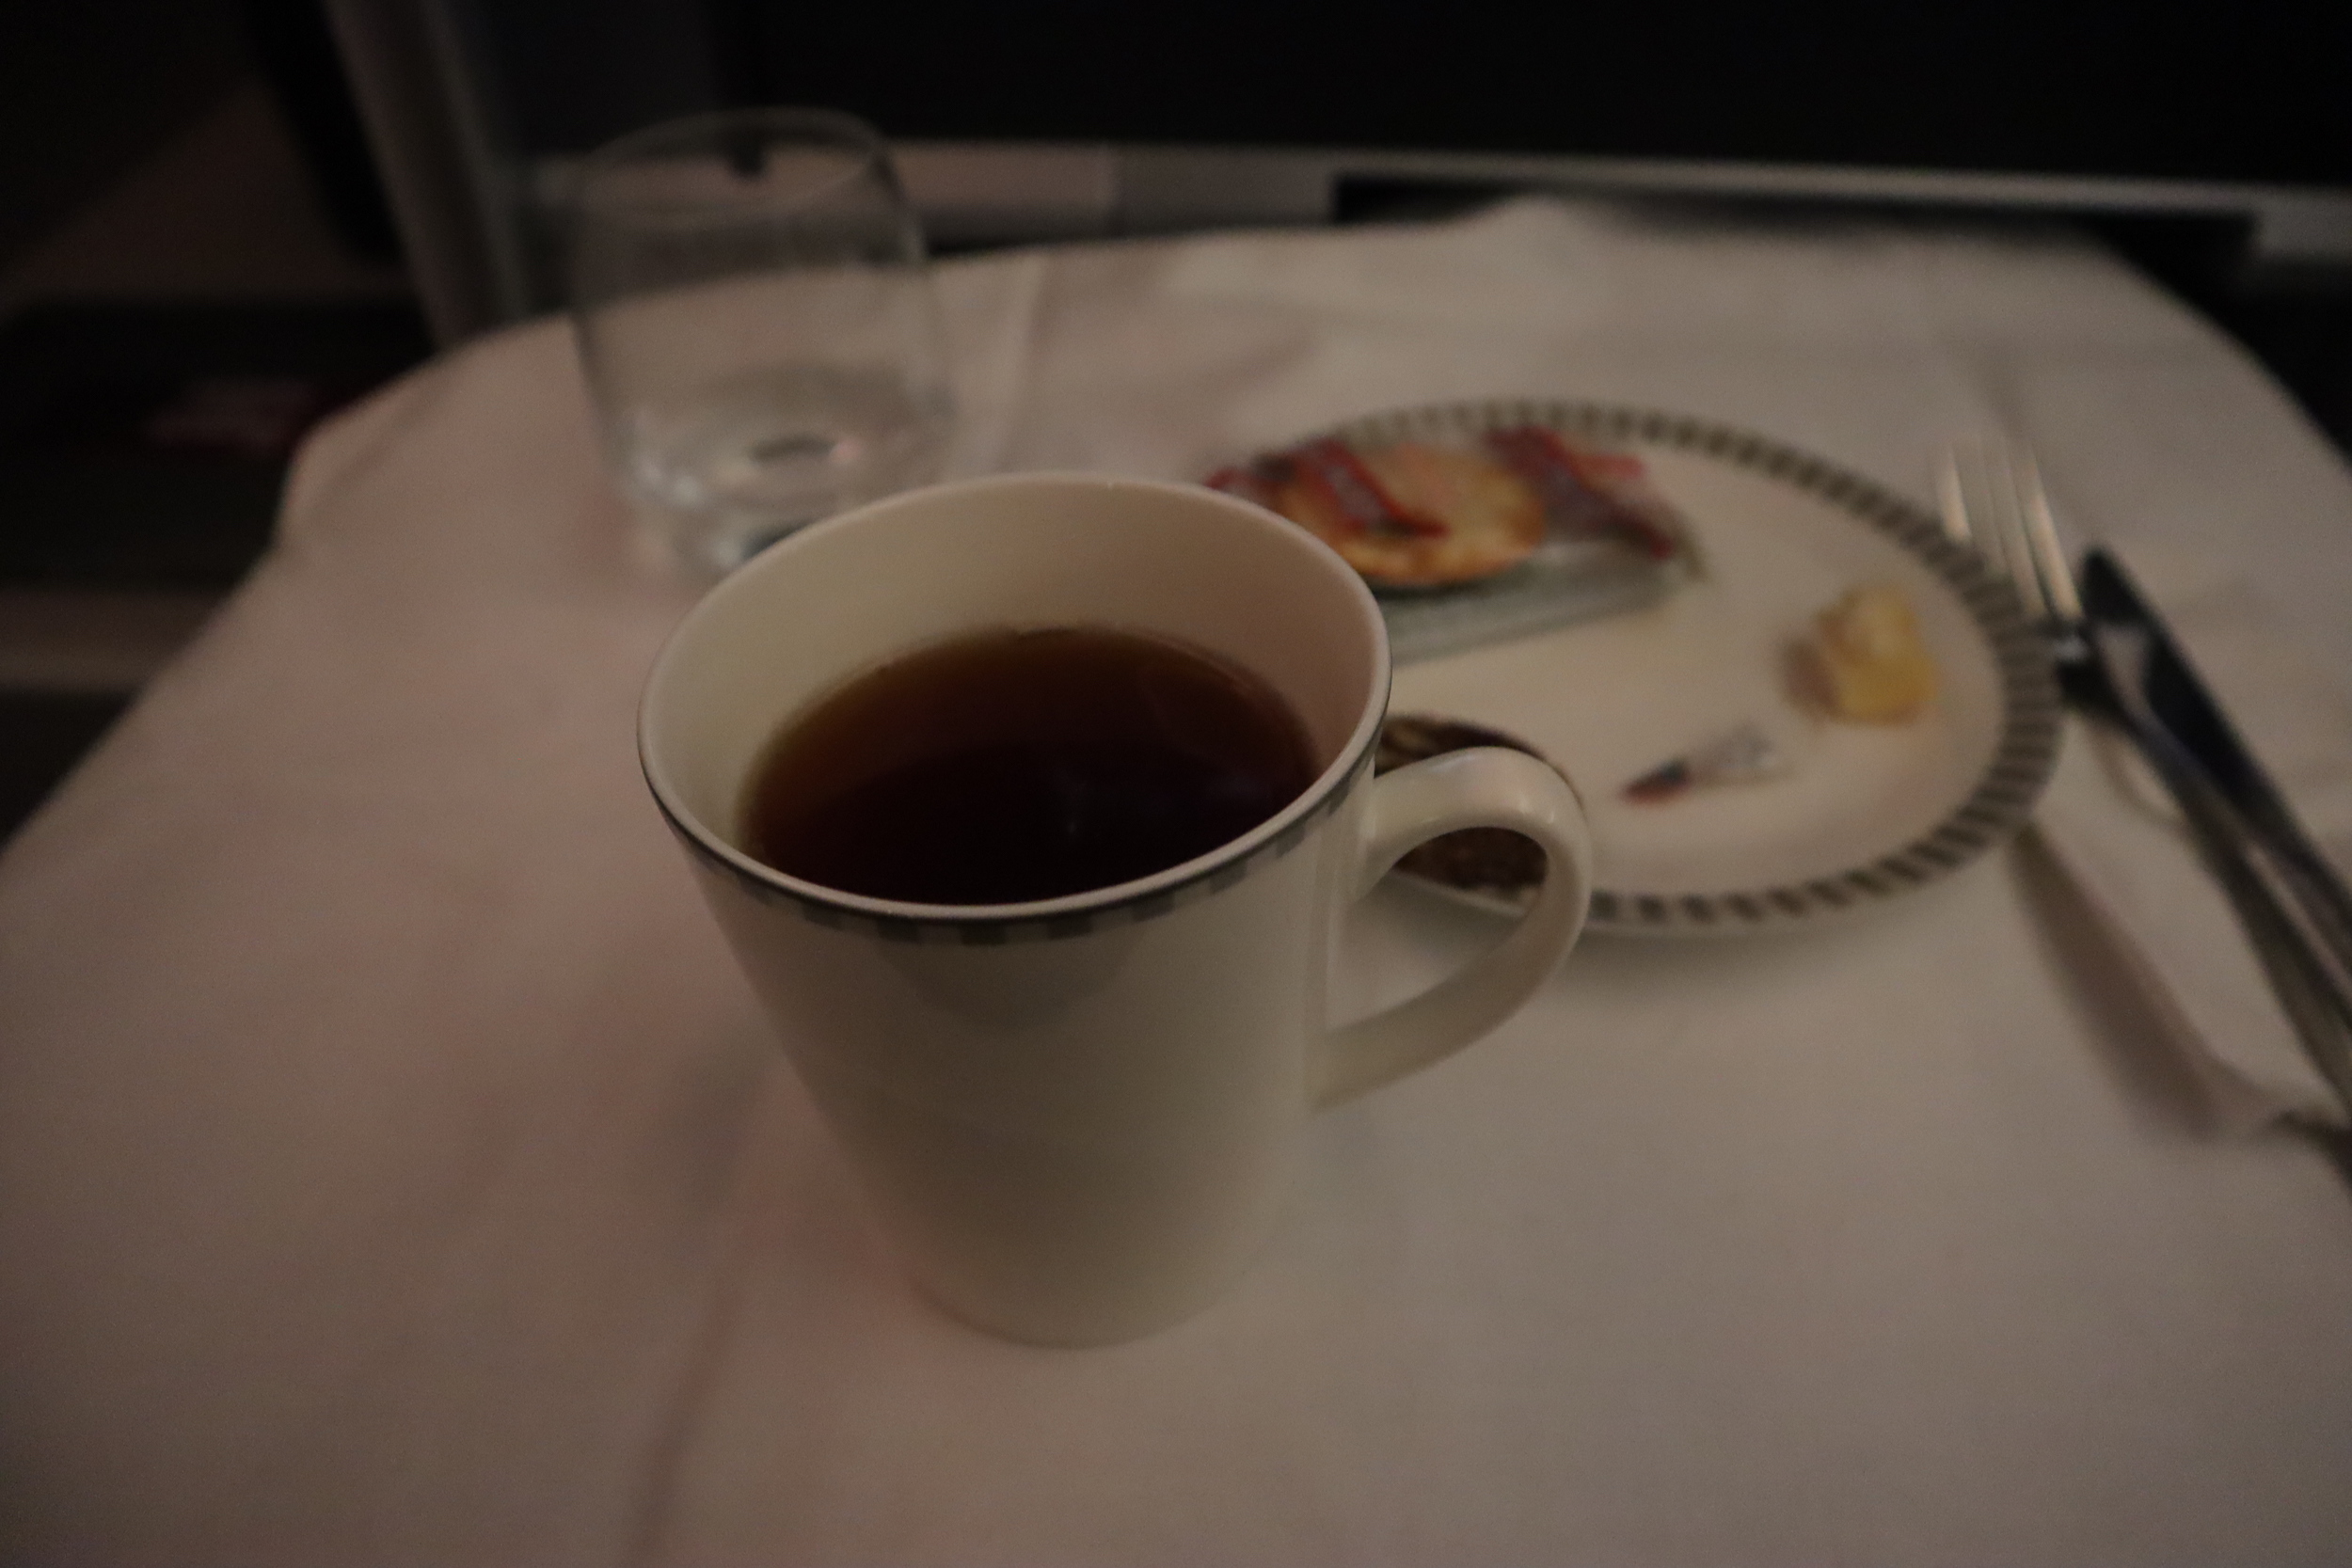 Singapore Airlines 787-10 business class – Earl Grey tea